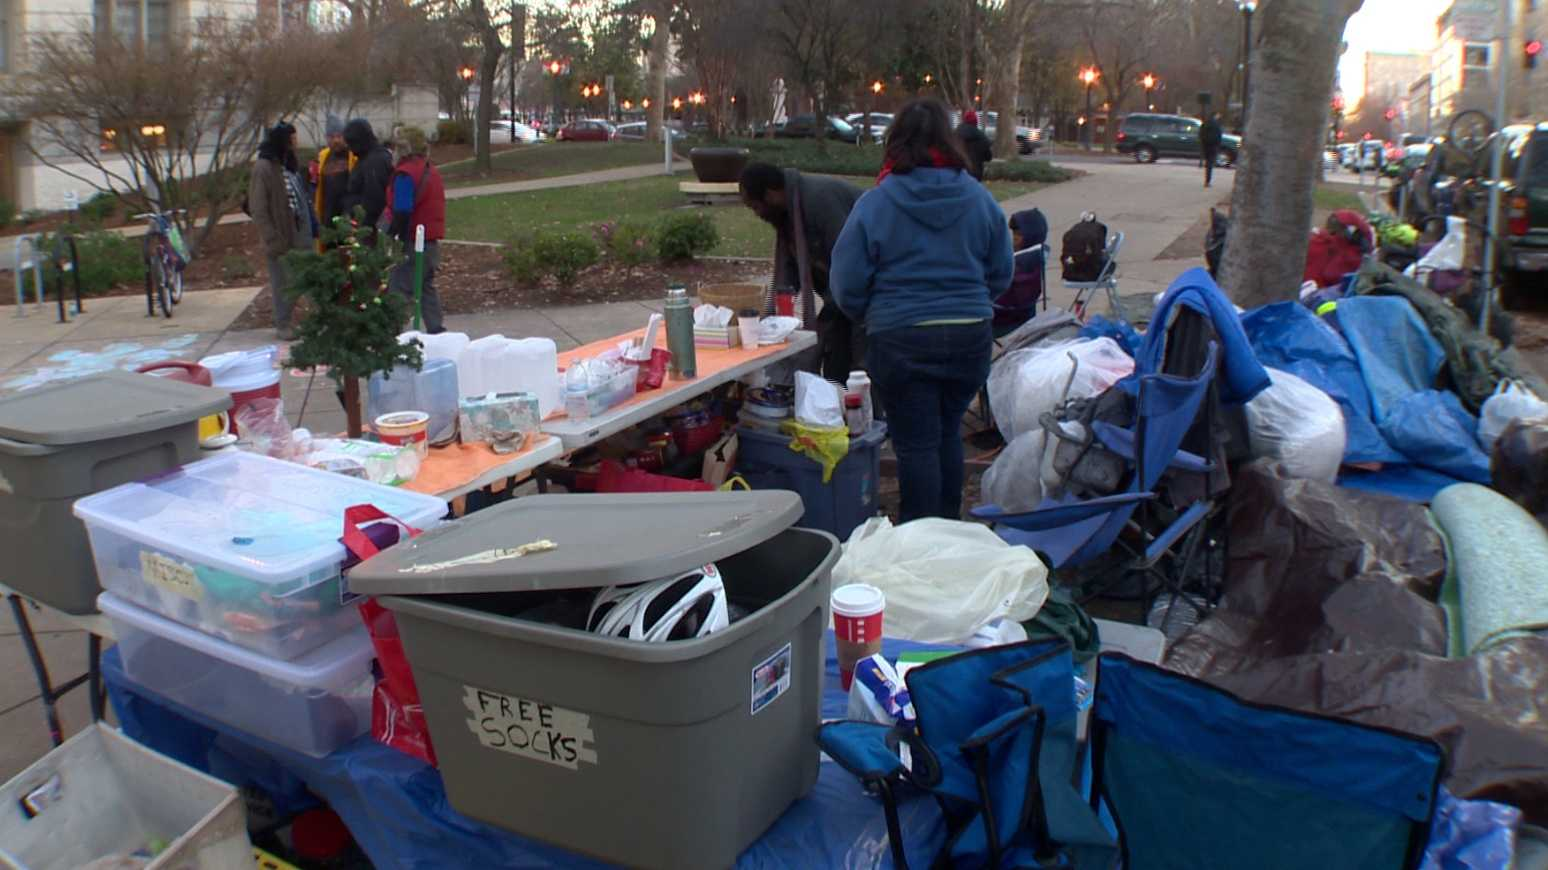 A homeless camp has been outside the Sacramento City Hall for more than 20 days. People at the camp said on Monday, Dec. 28, 2015, they are protesting the city's no camping ordinance.